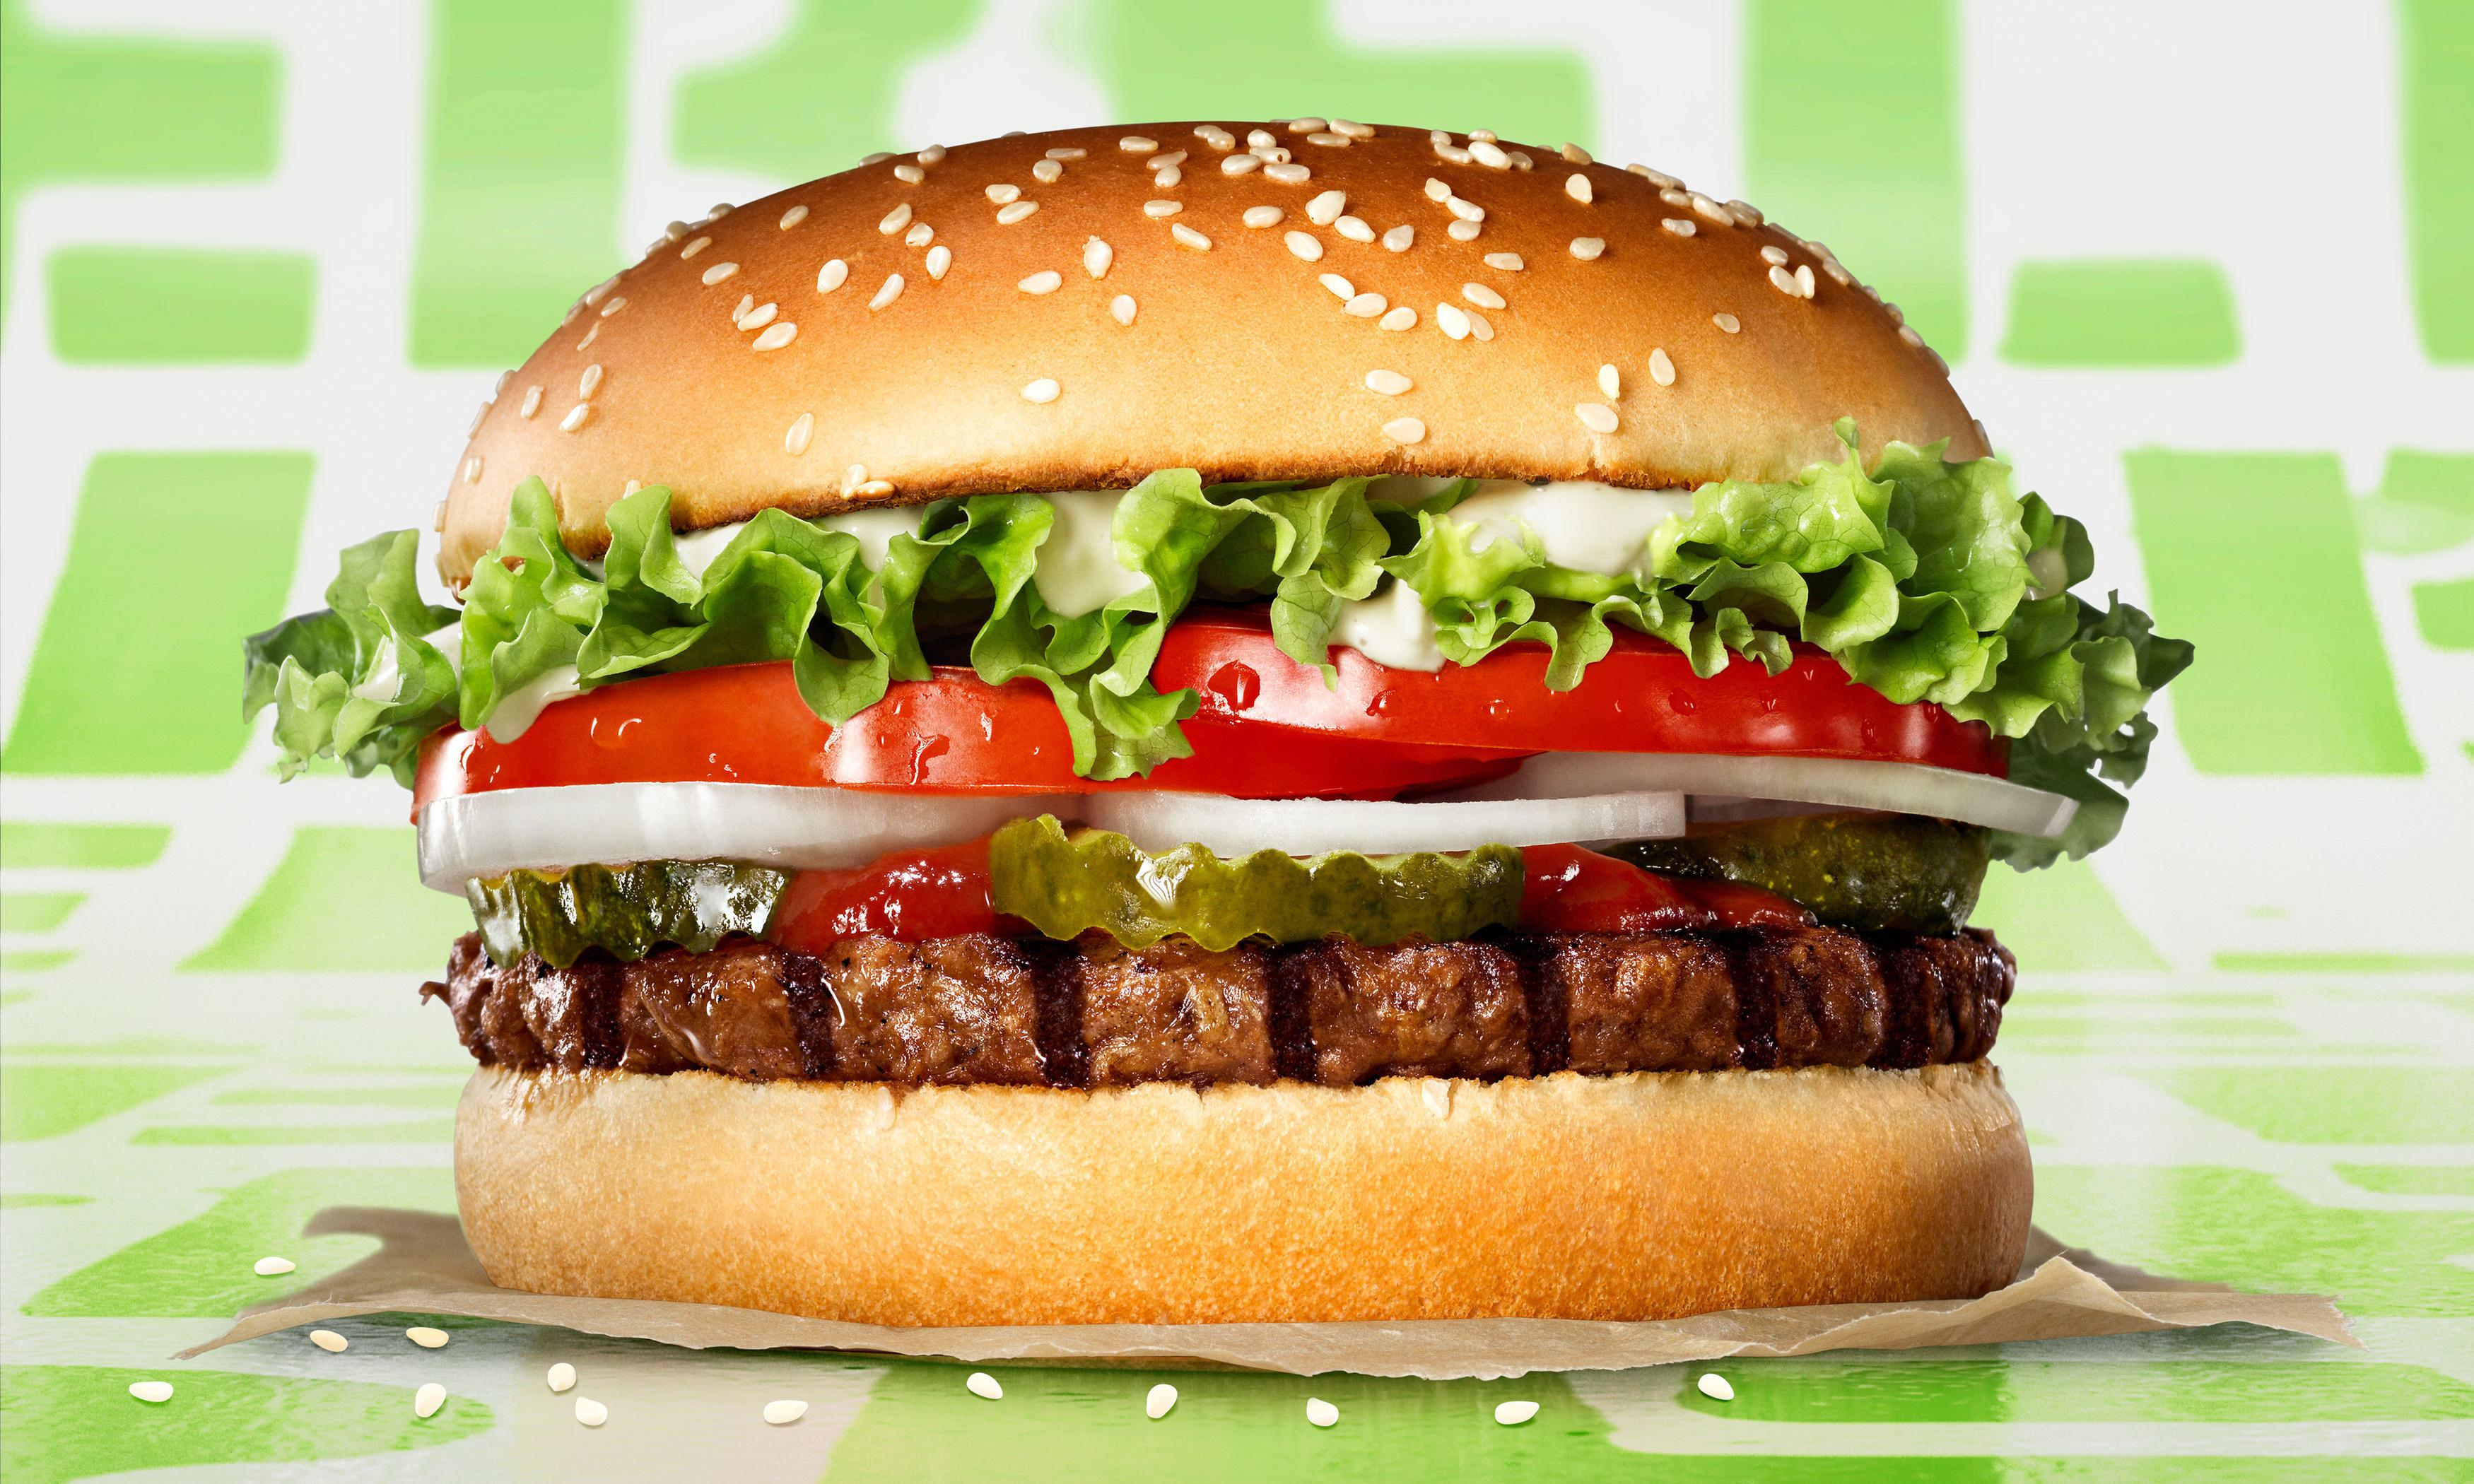 Burger King's new plant-based burger is not suitable for vegans